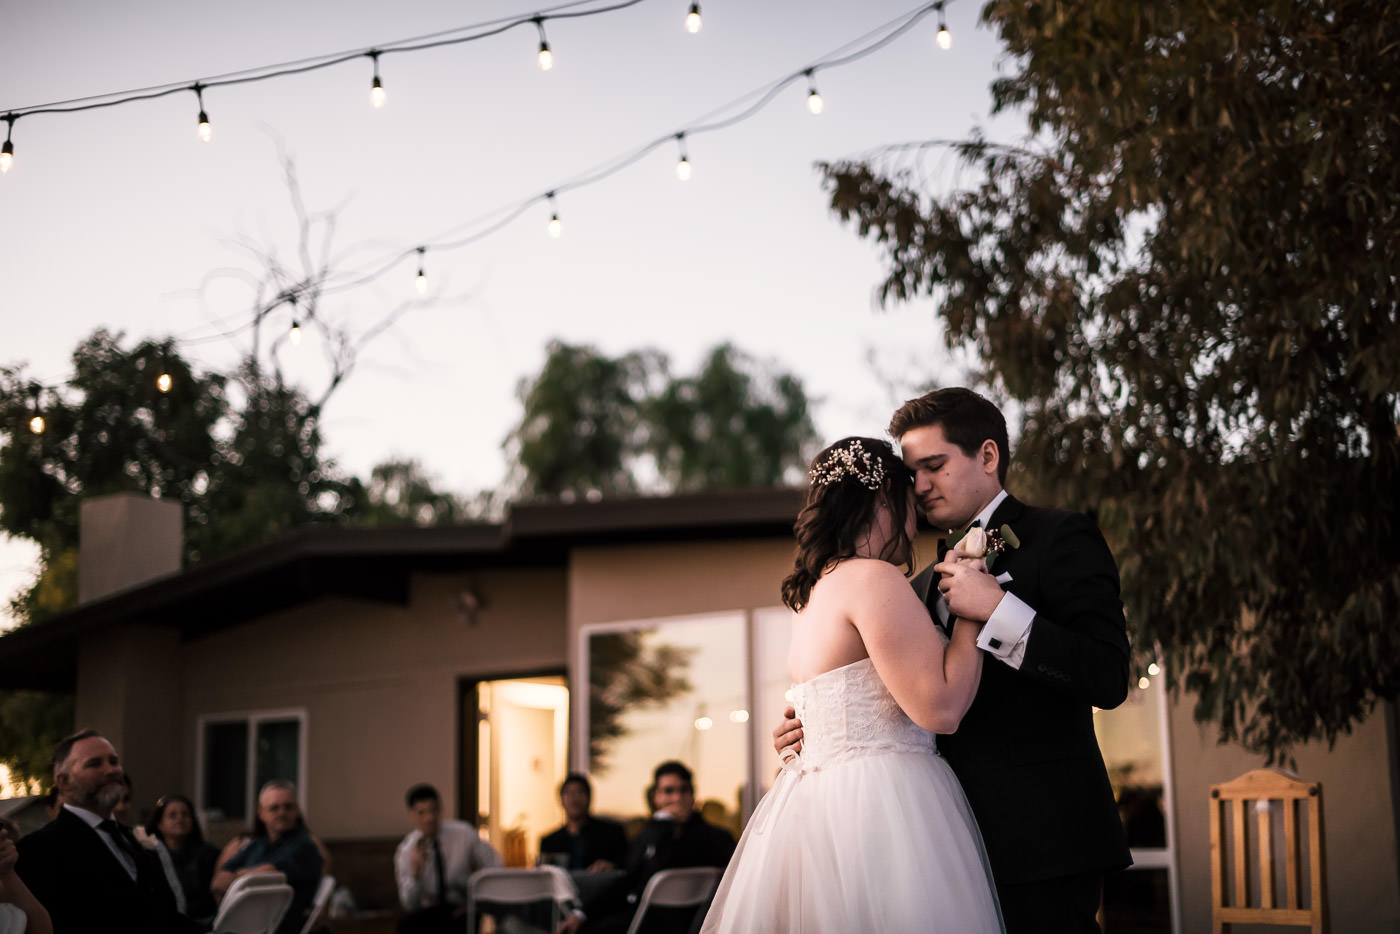 Romantic first dance at this backyard wedding in the Temecula Wine Country.